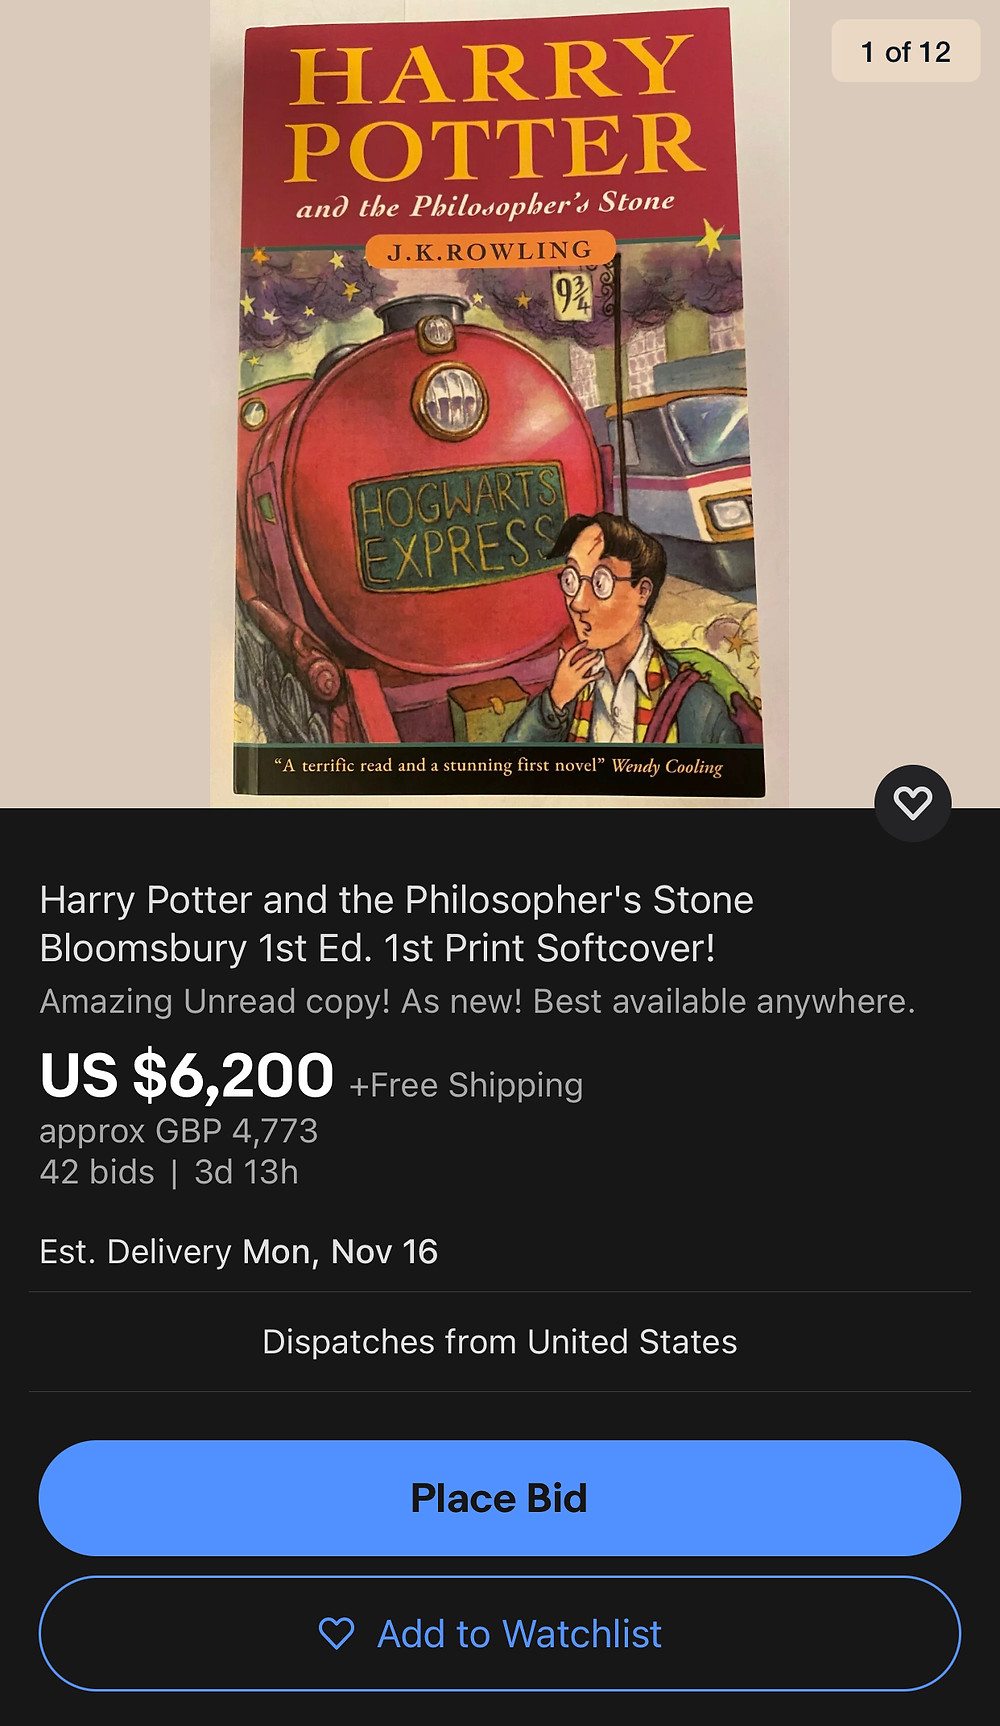 Fake Harry Potter and the Philosopher's Stone up for auction on eBay, 11/2020